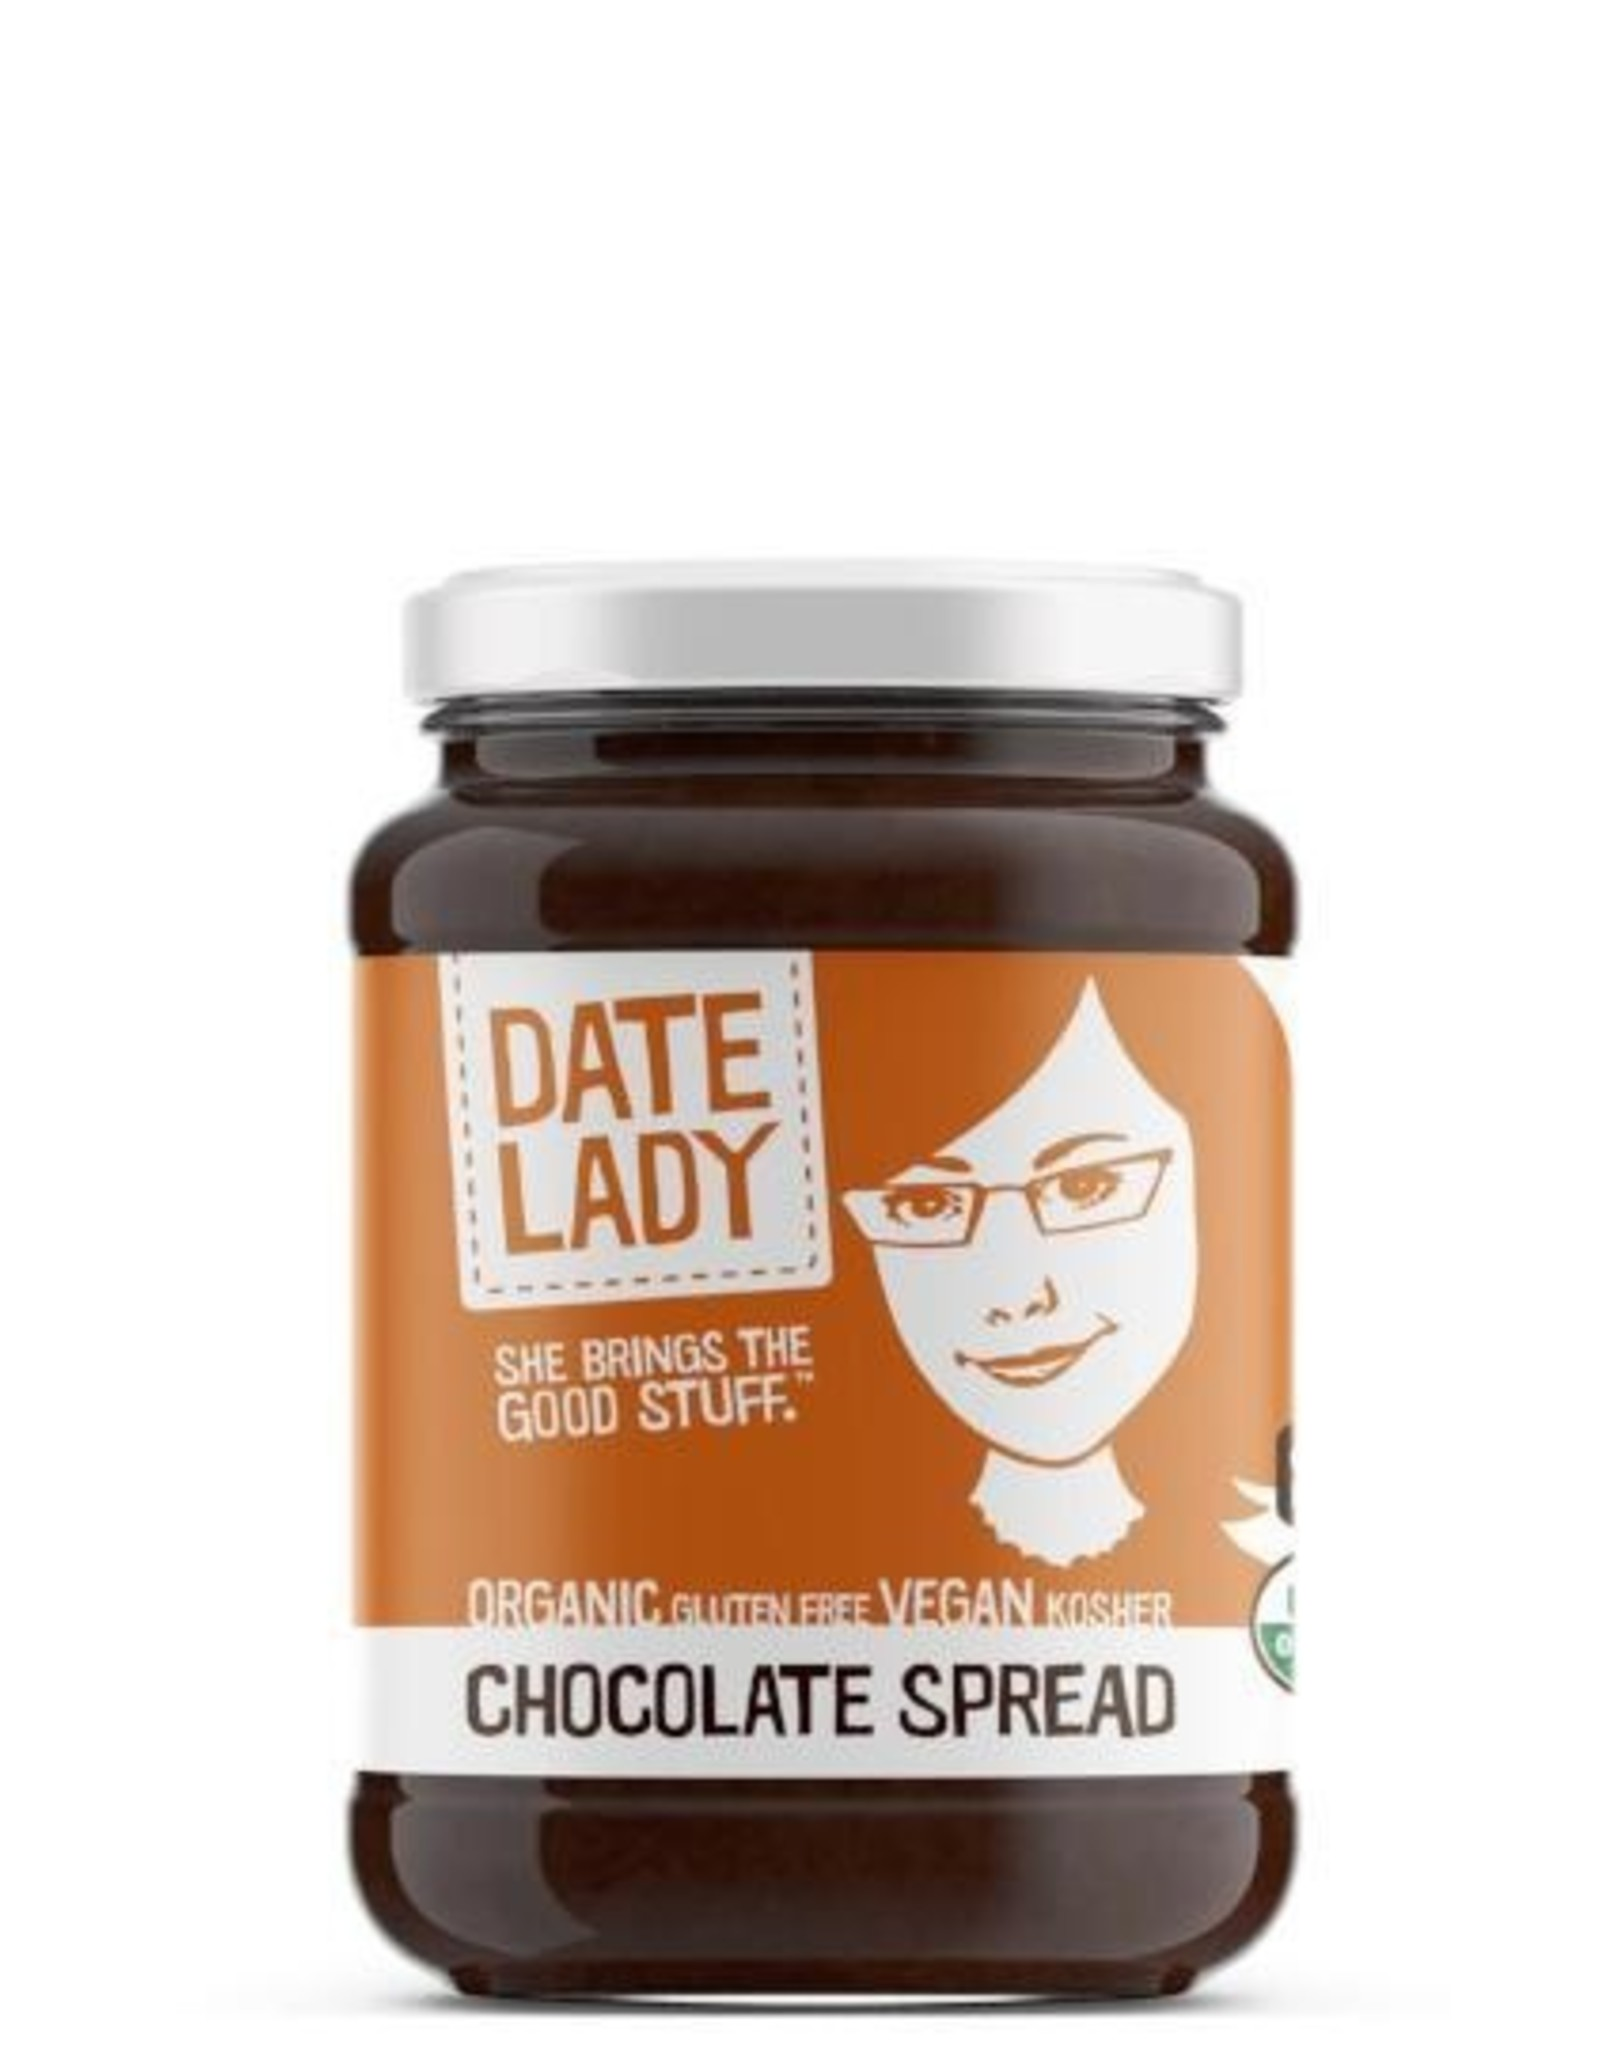 Date Lady Date Lady Chocolate Spread